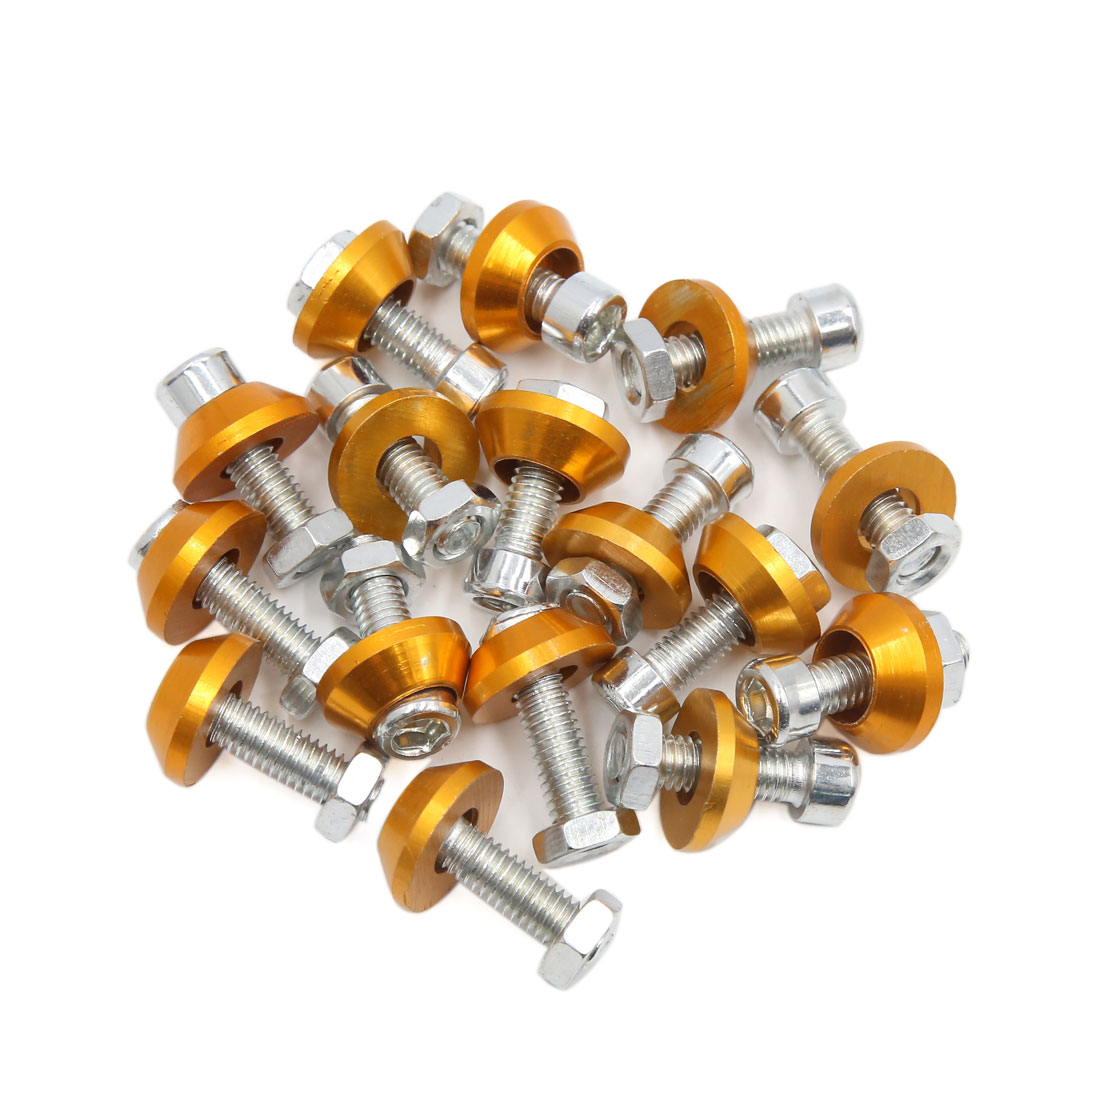 16pcs Gold Tone 6mm Thread Diameter Motorcycle License Plate Frame Screws Bolts Caps